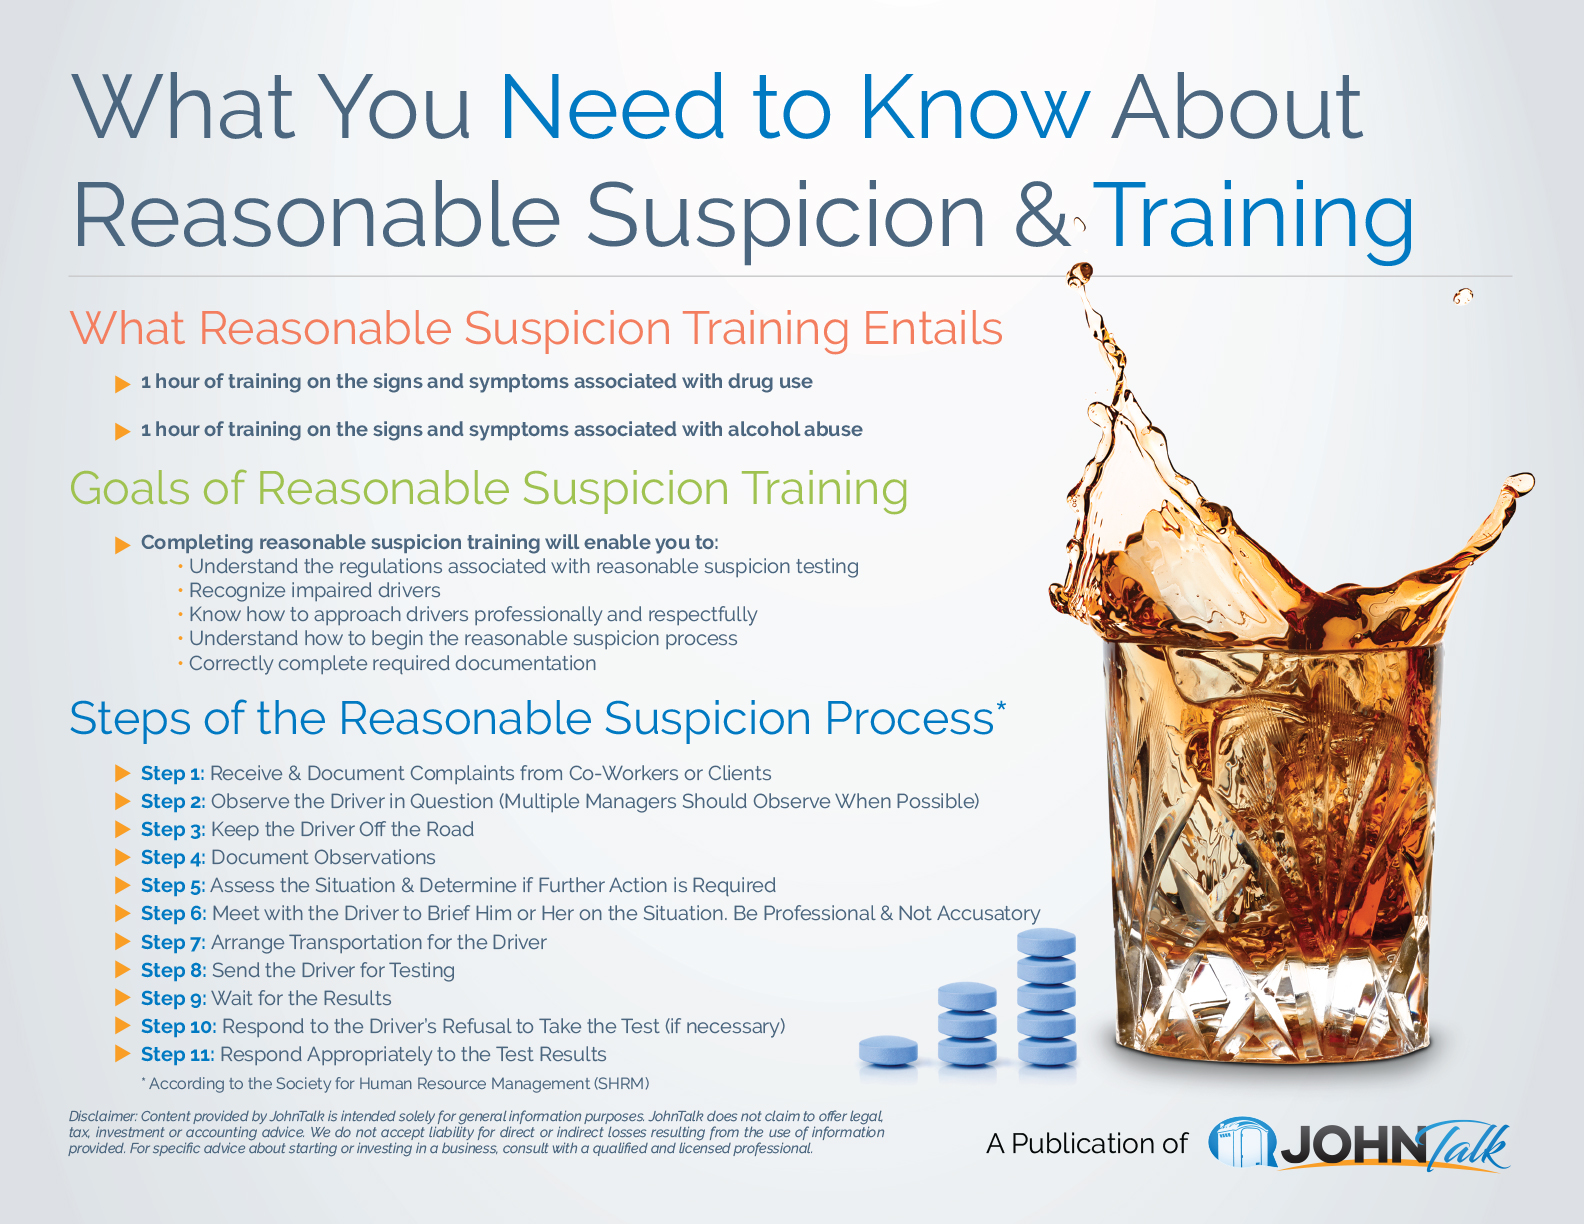 What You Need to Know About Reasonable Suspicion & Training